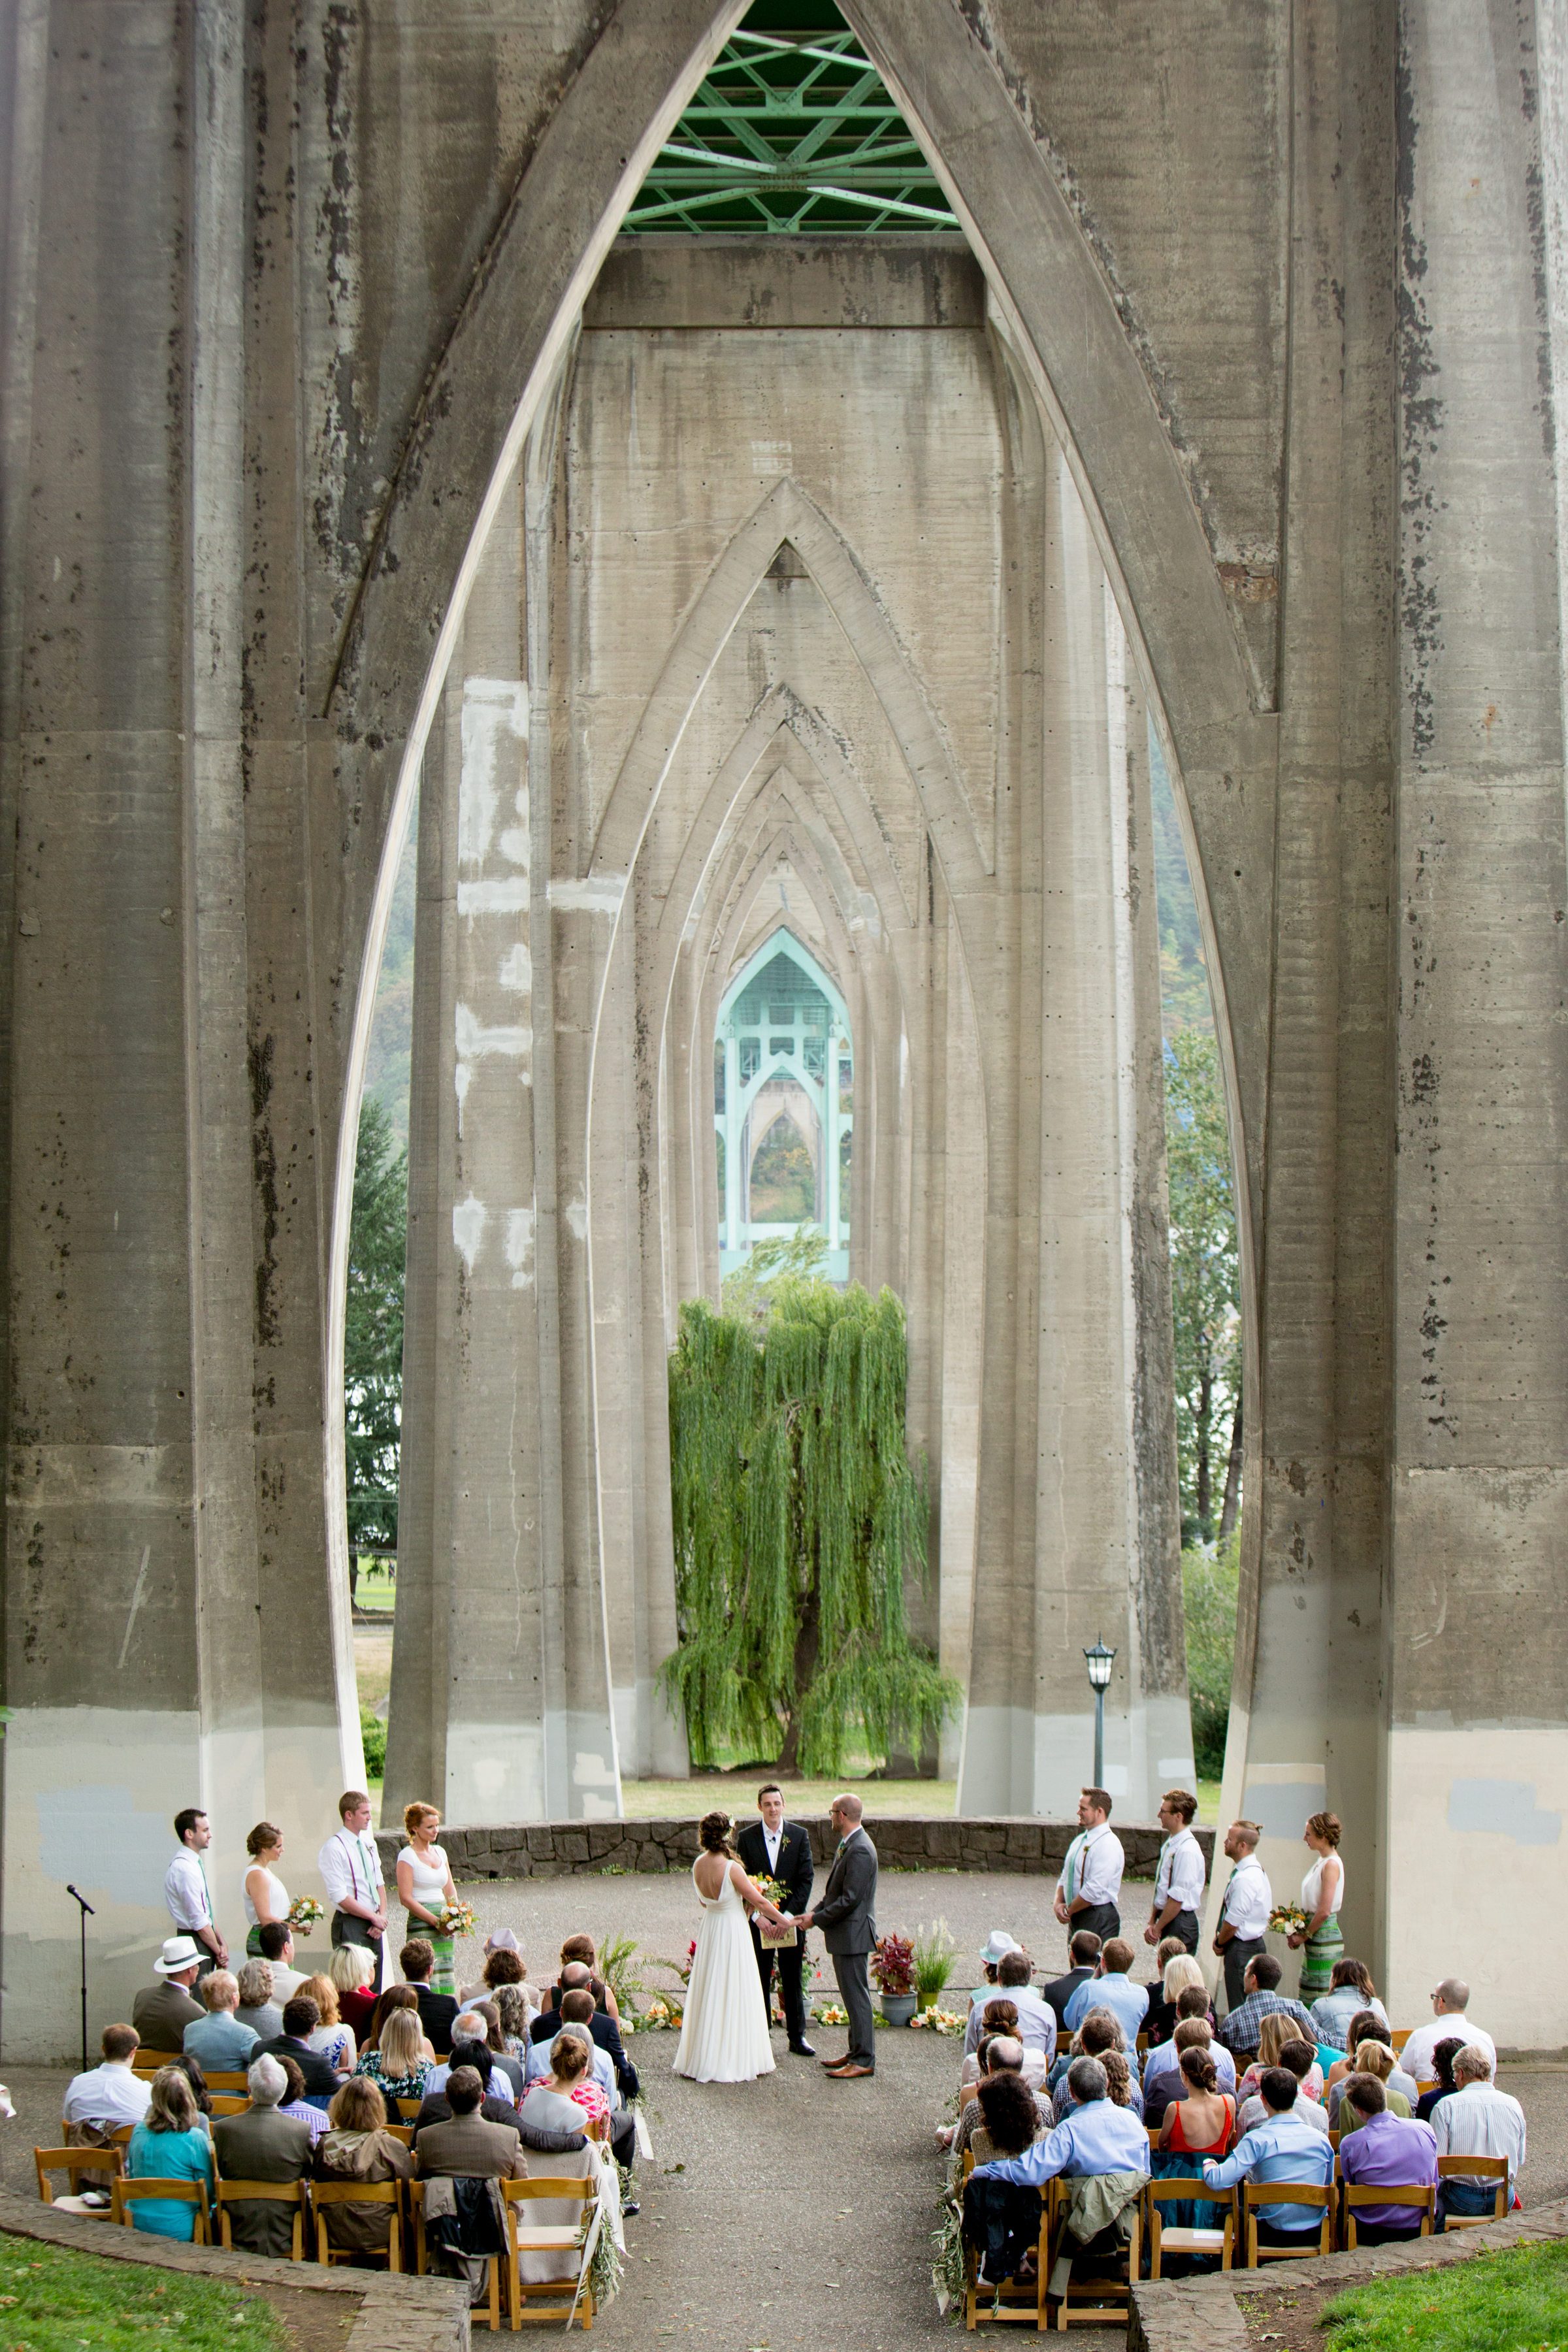 Cathedral Bridge wedding ceremony in Portland, Oregon - photo by Jessica Hill Photography